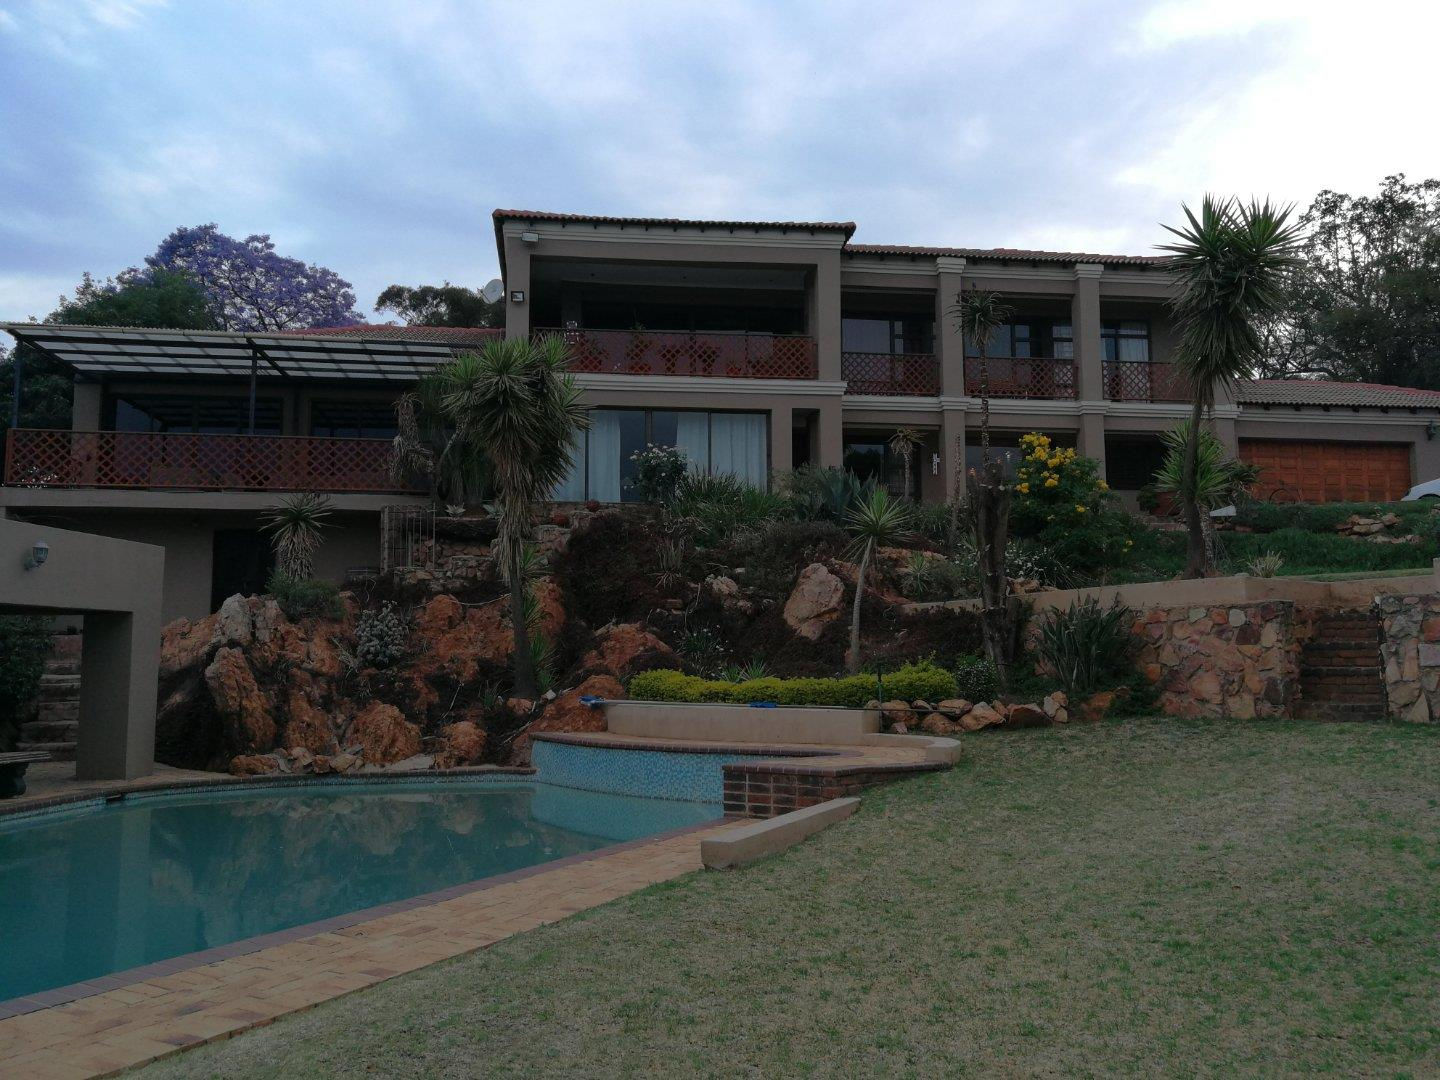 6 Bedroom  House for Sale in Krugersdorp - Gauteng